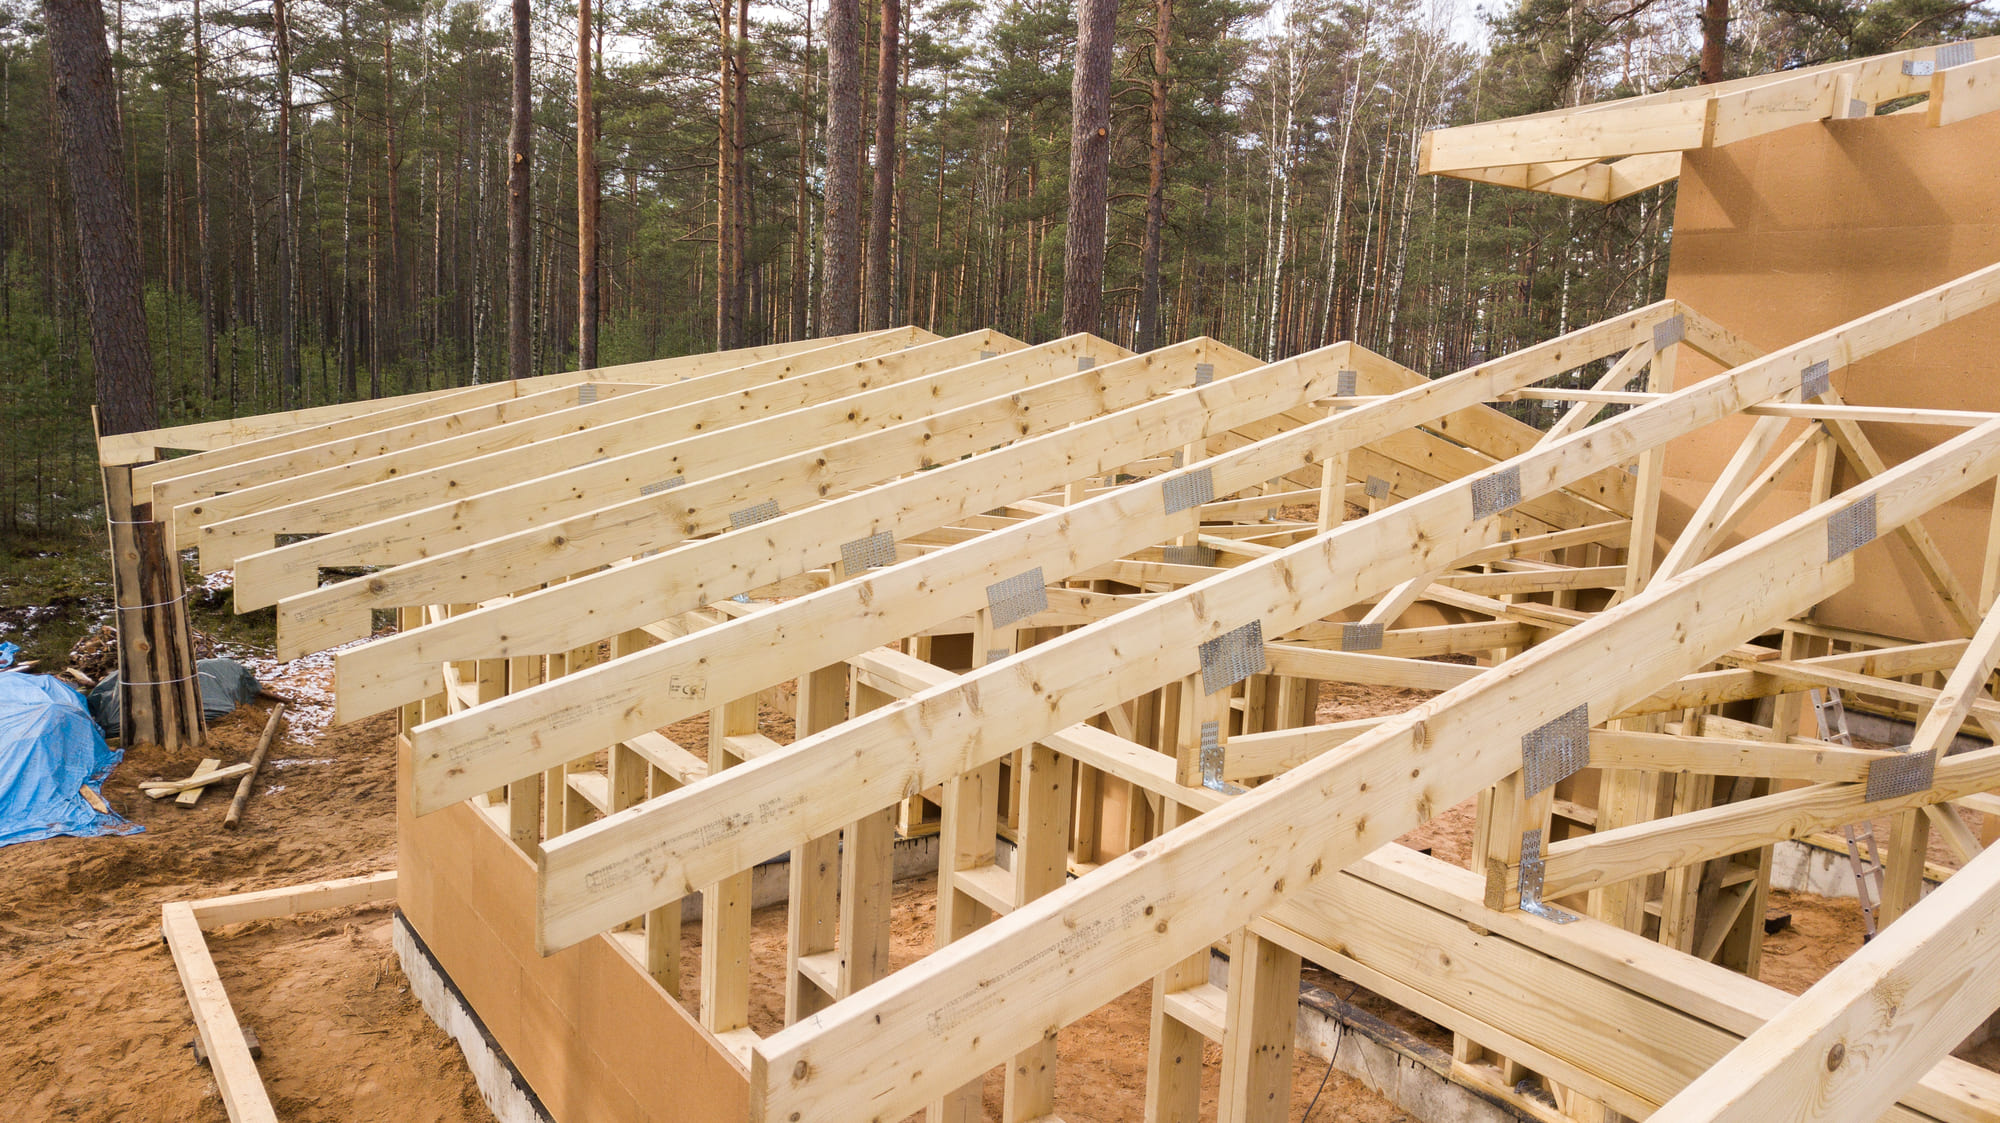 assembly of wooden trusses and roof structures